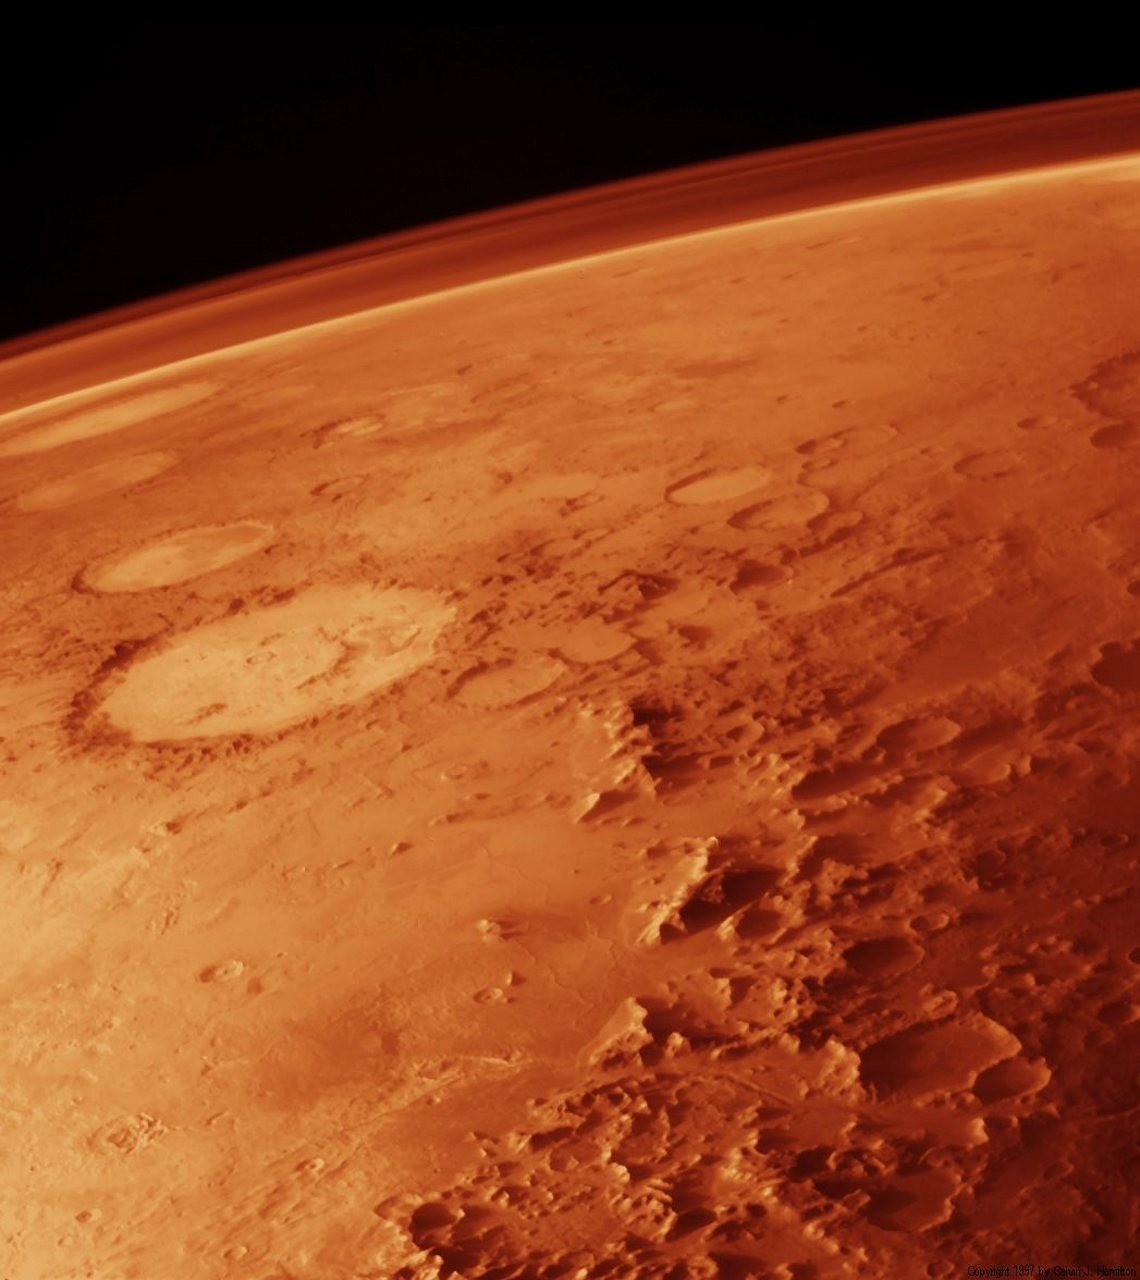 mars planet atmosphere free photo